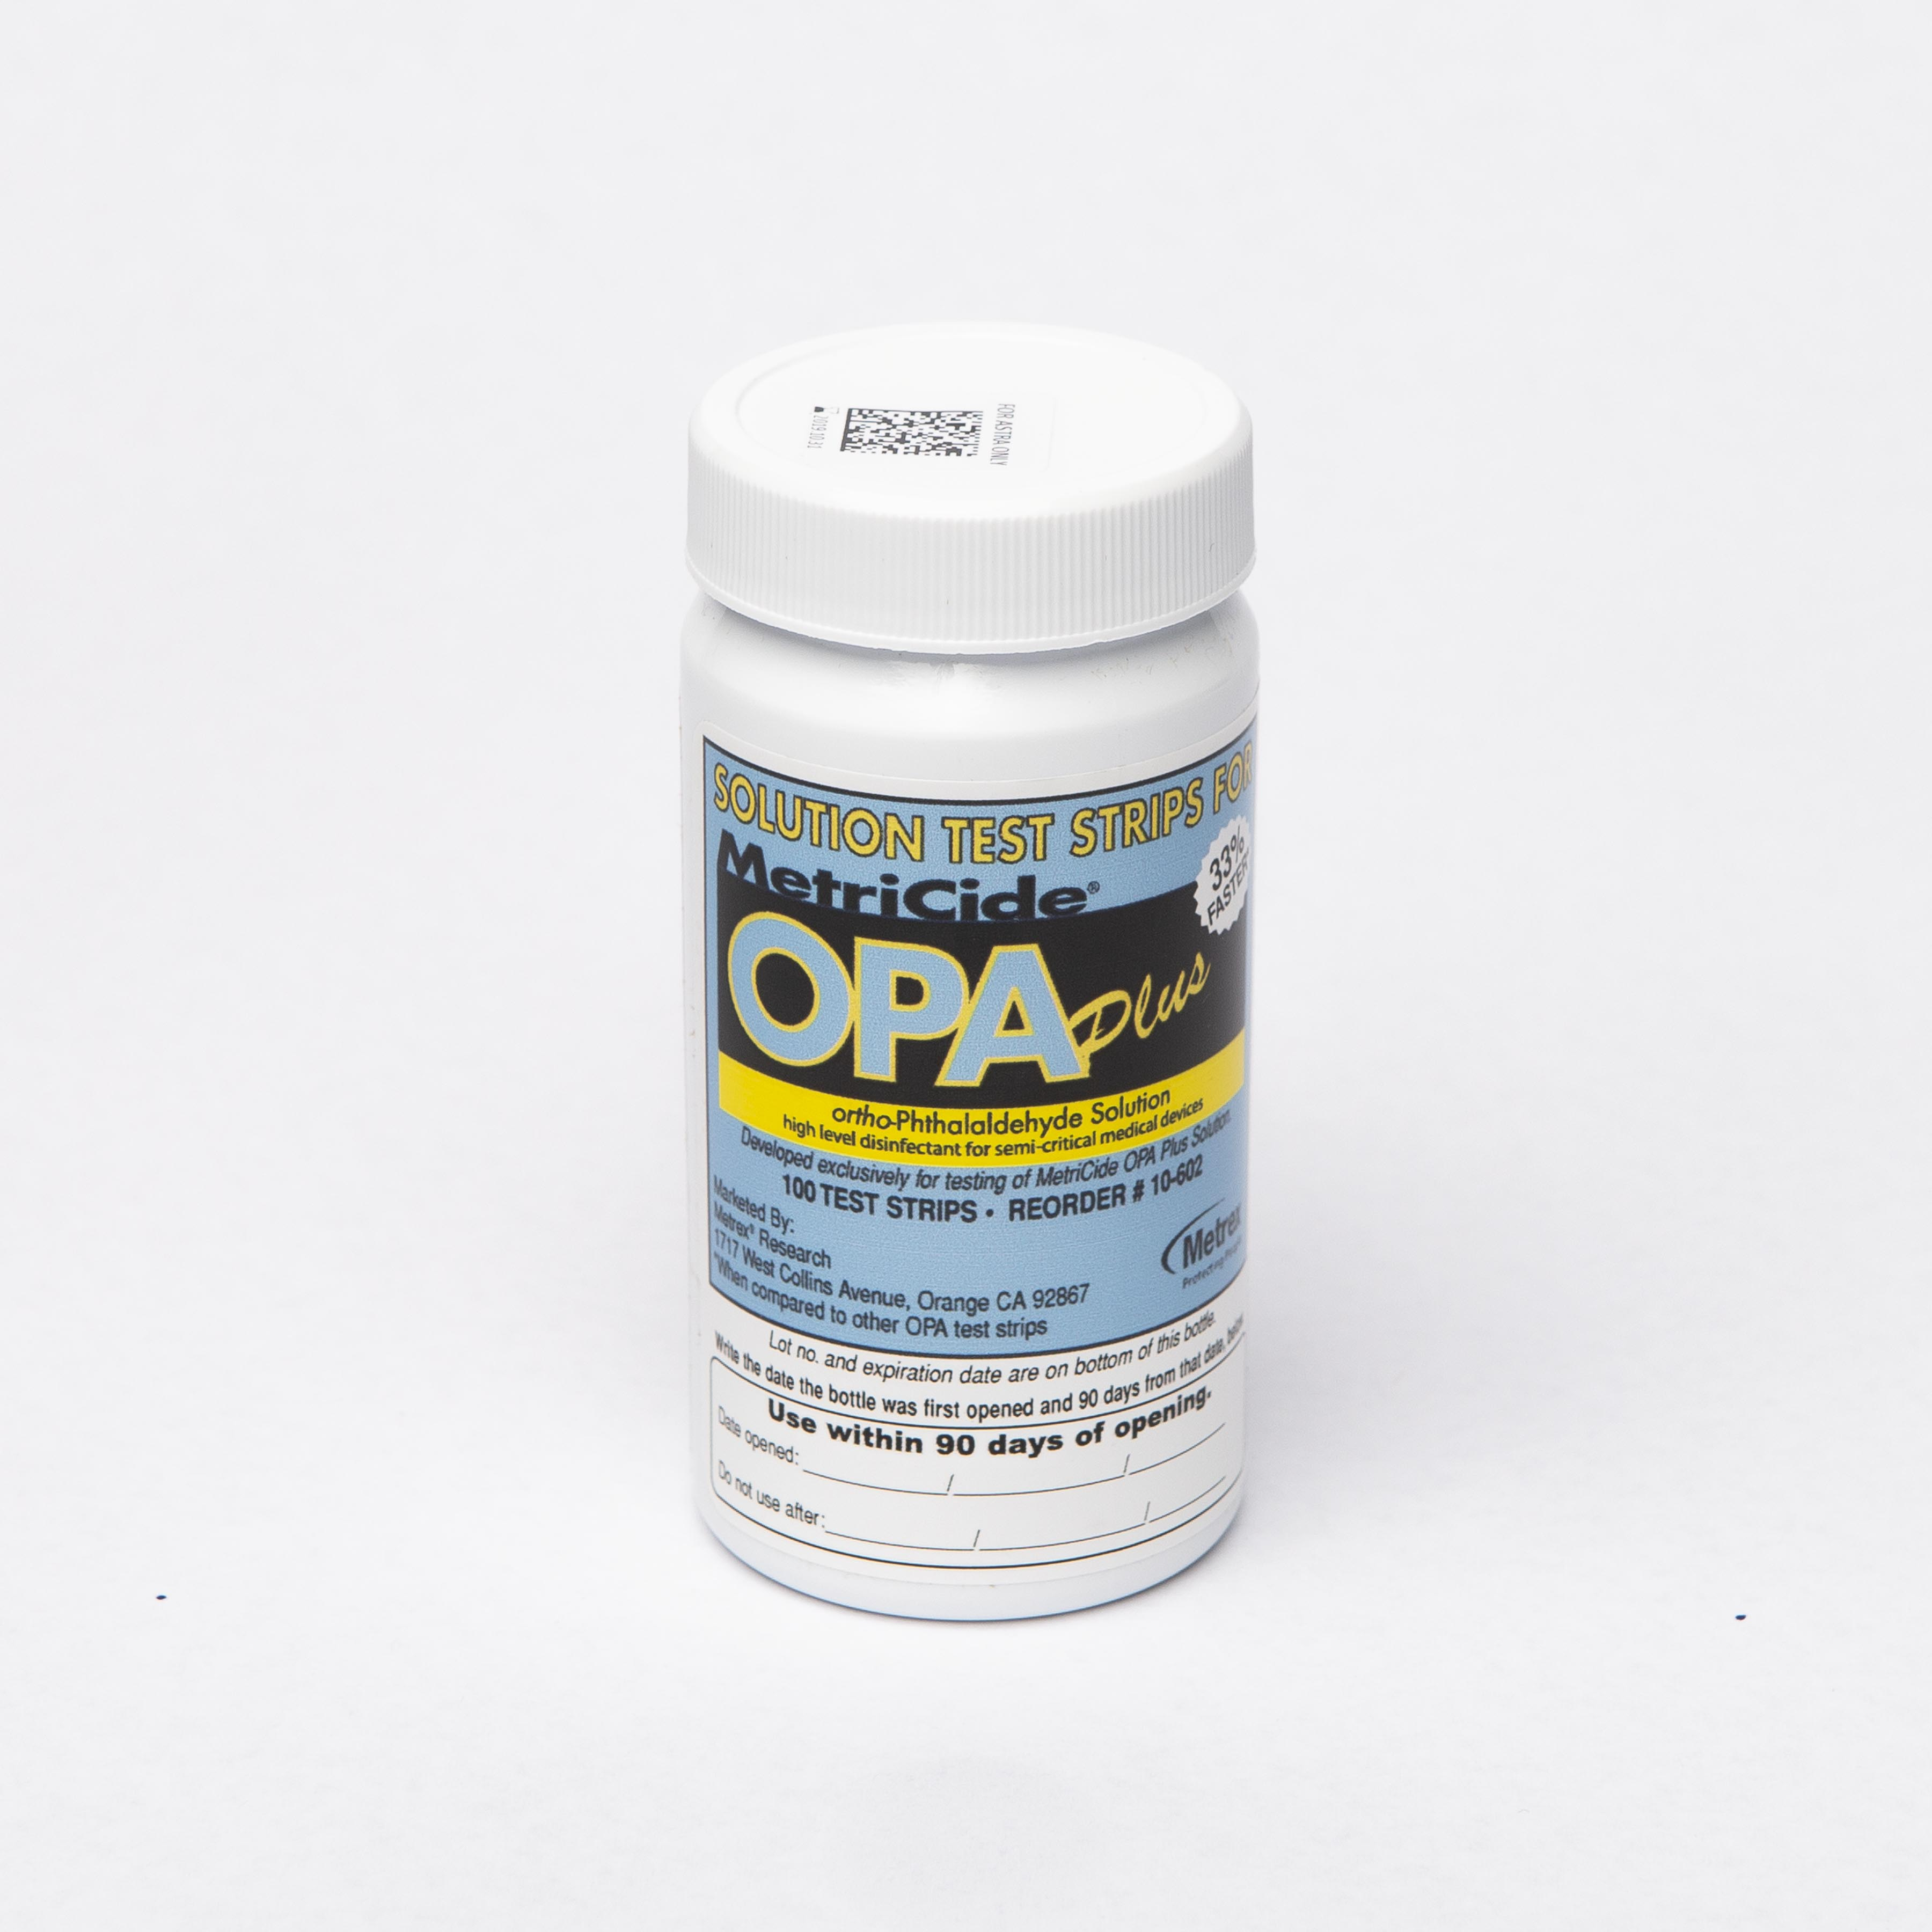 MetriCide OPA Test Strips